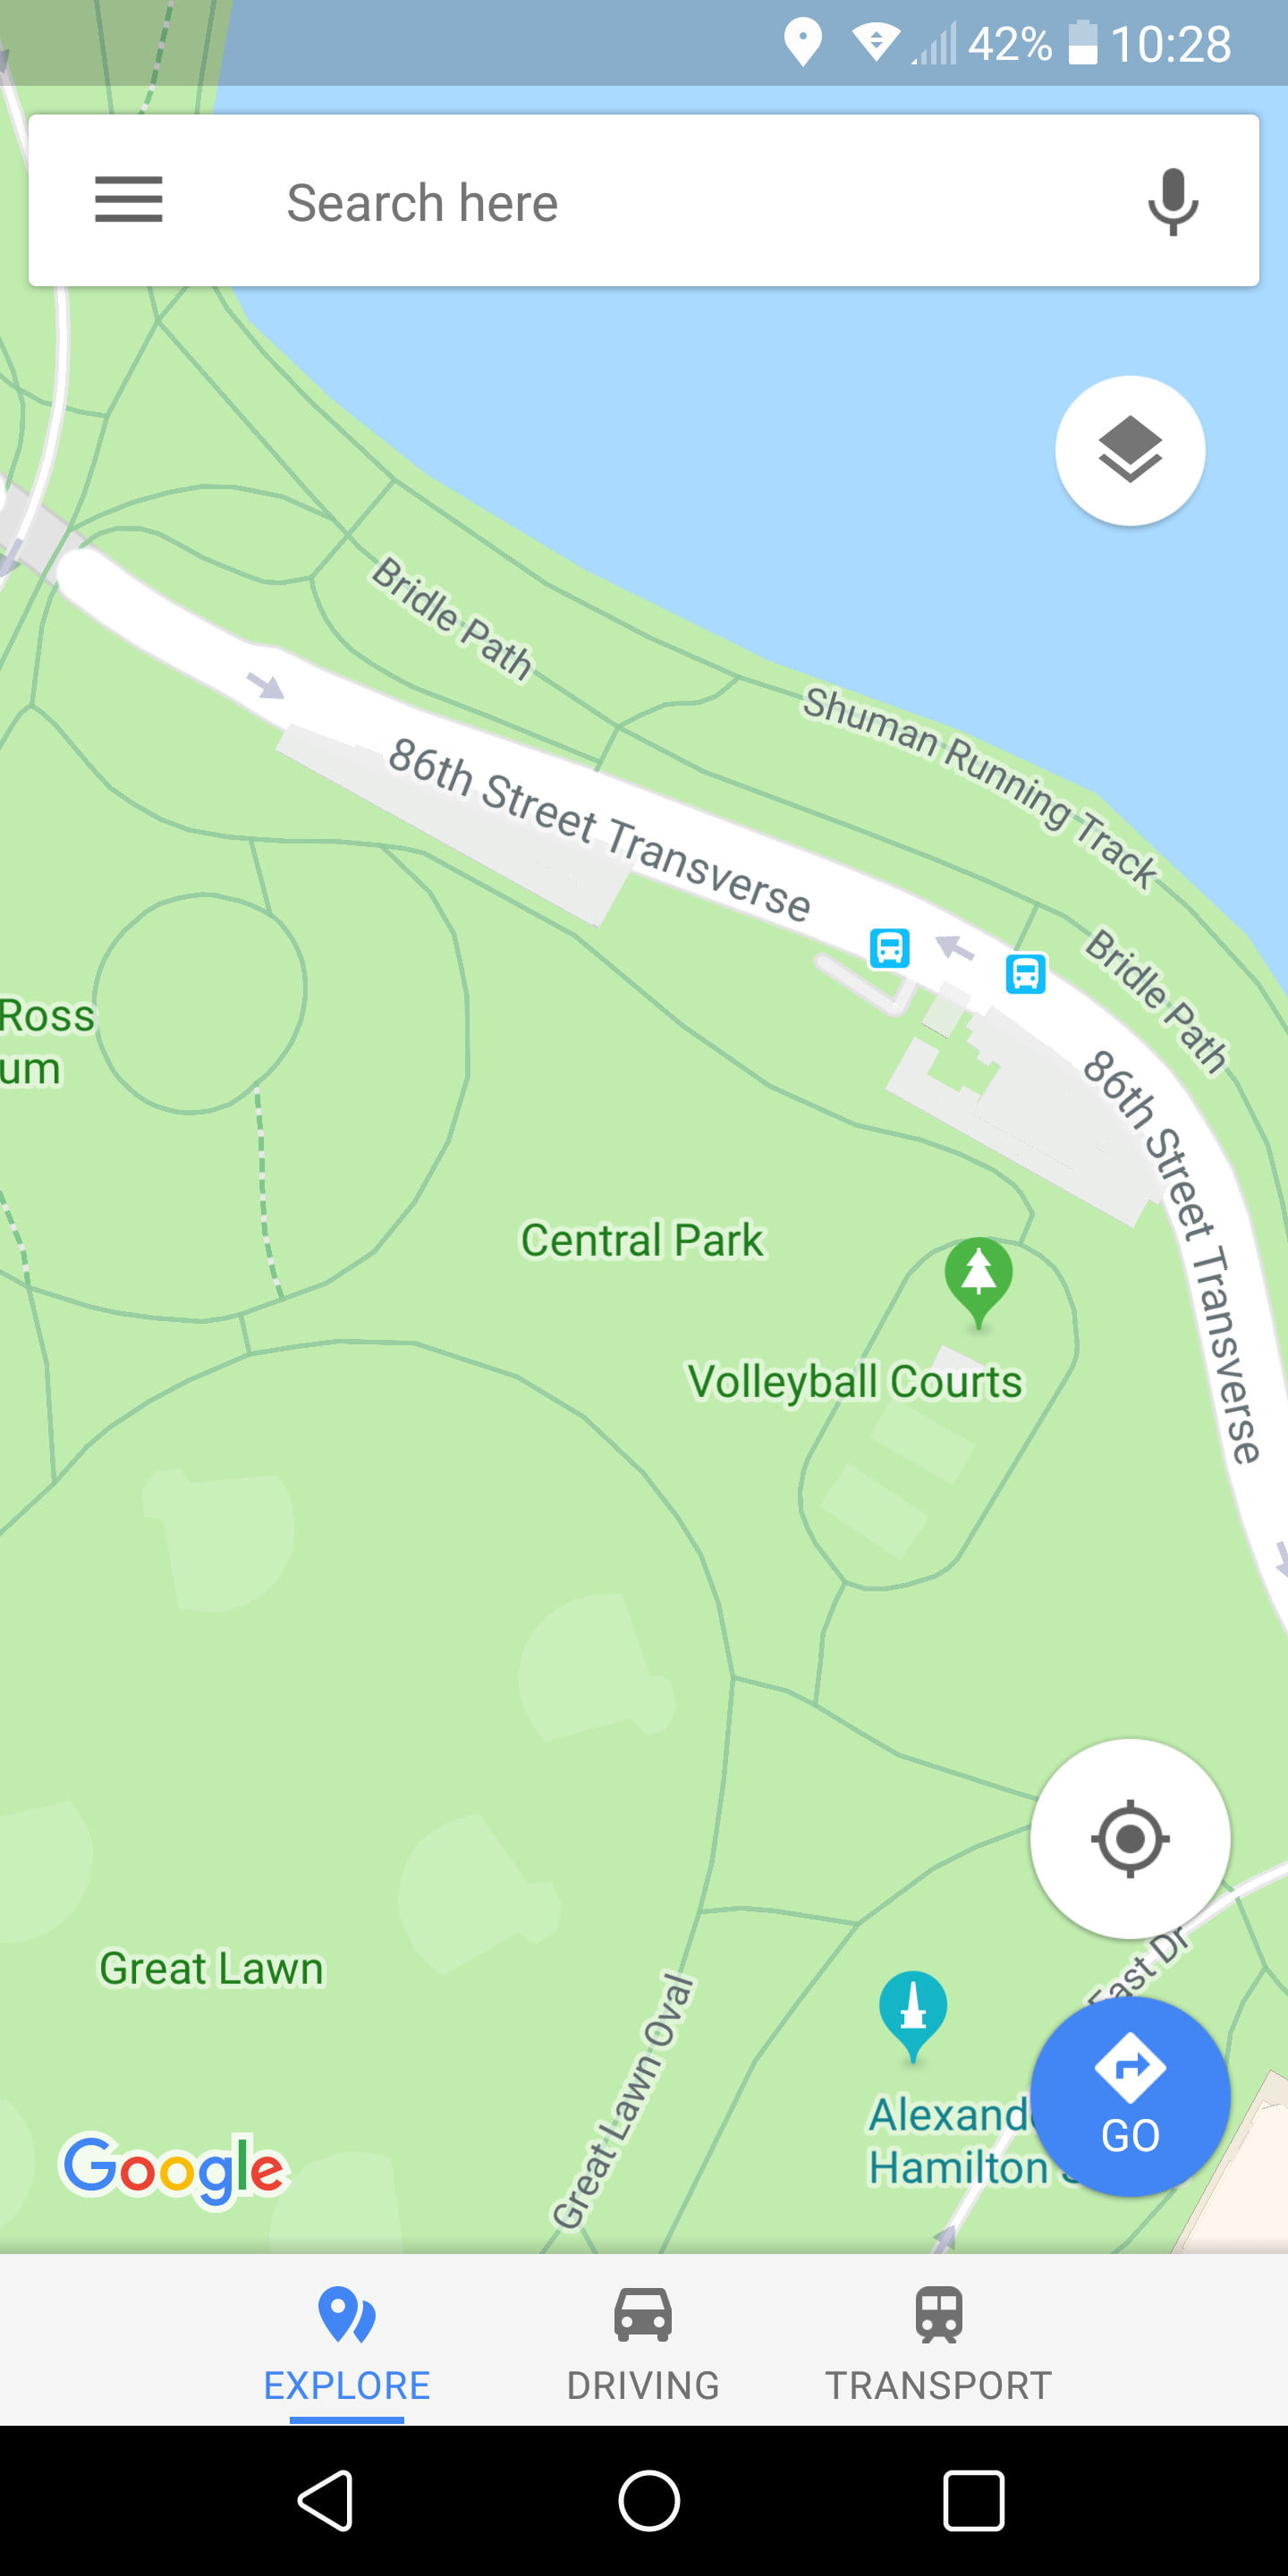 How to Use Google Maps | Page 2 | Digital Trends Central Park Google Map on